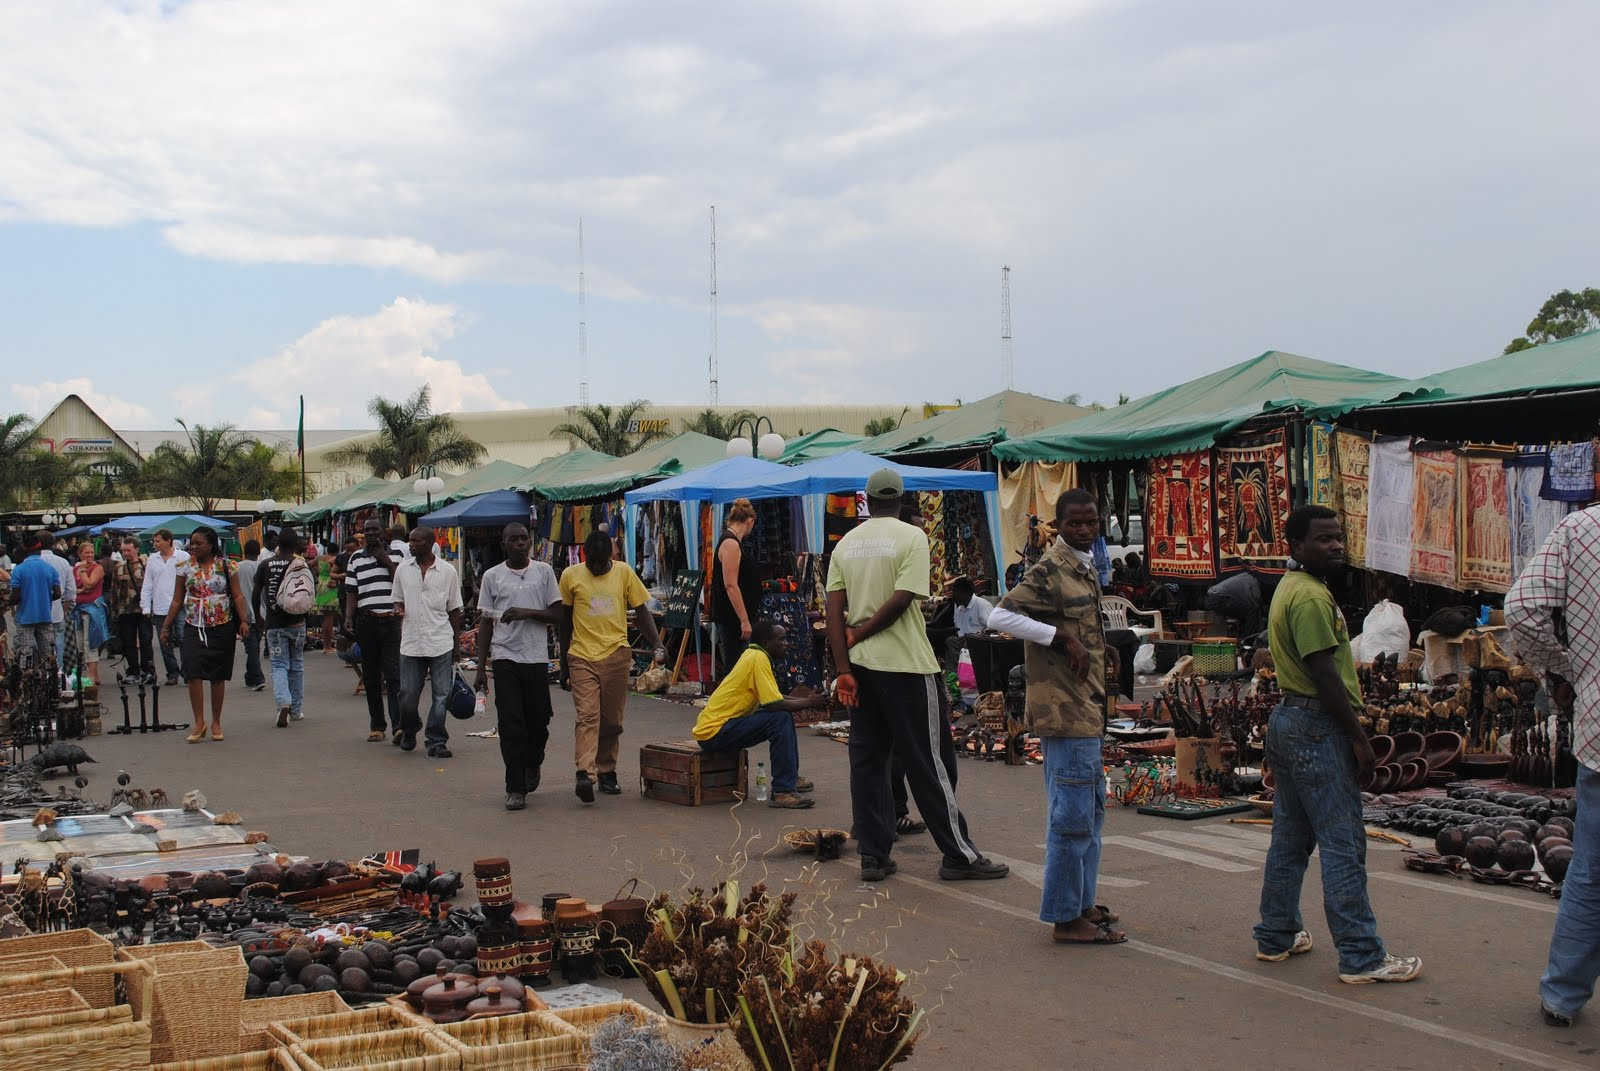 Lubuto Library Project, Lusaka, Zambia: Outdoor Market and ...